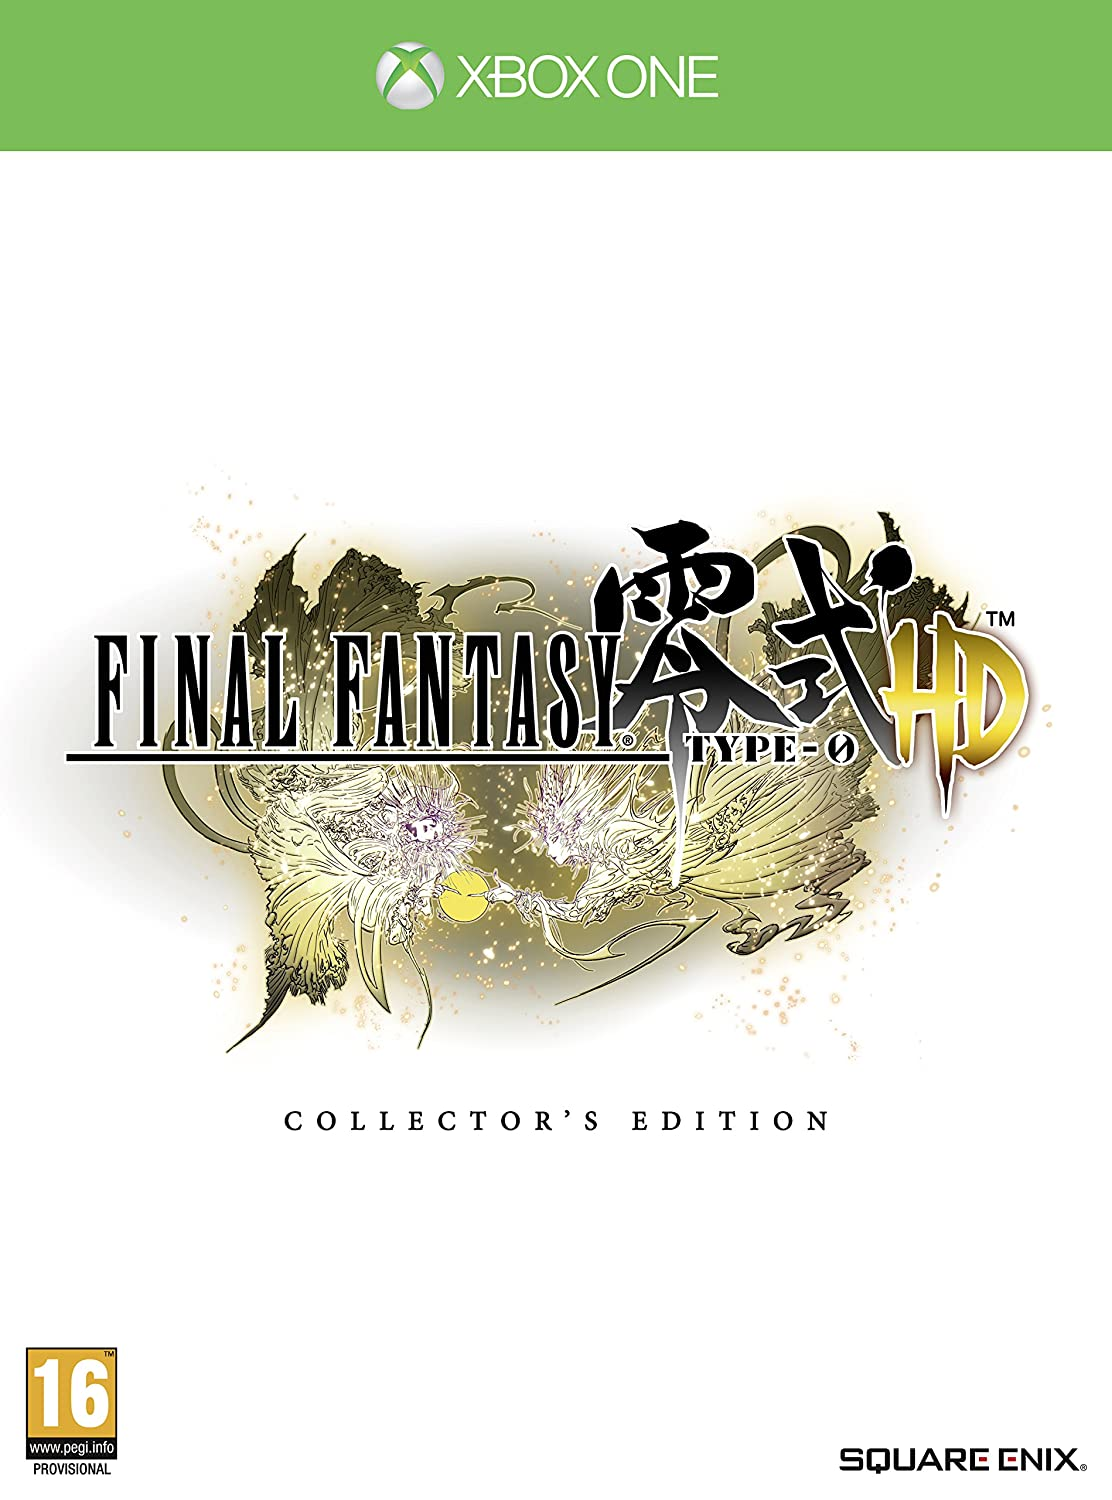 Final Fantasy Type HD Collectors Edition Xbox One Amazonco - Invoice format for services rendered square enix online store